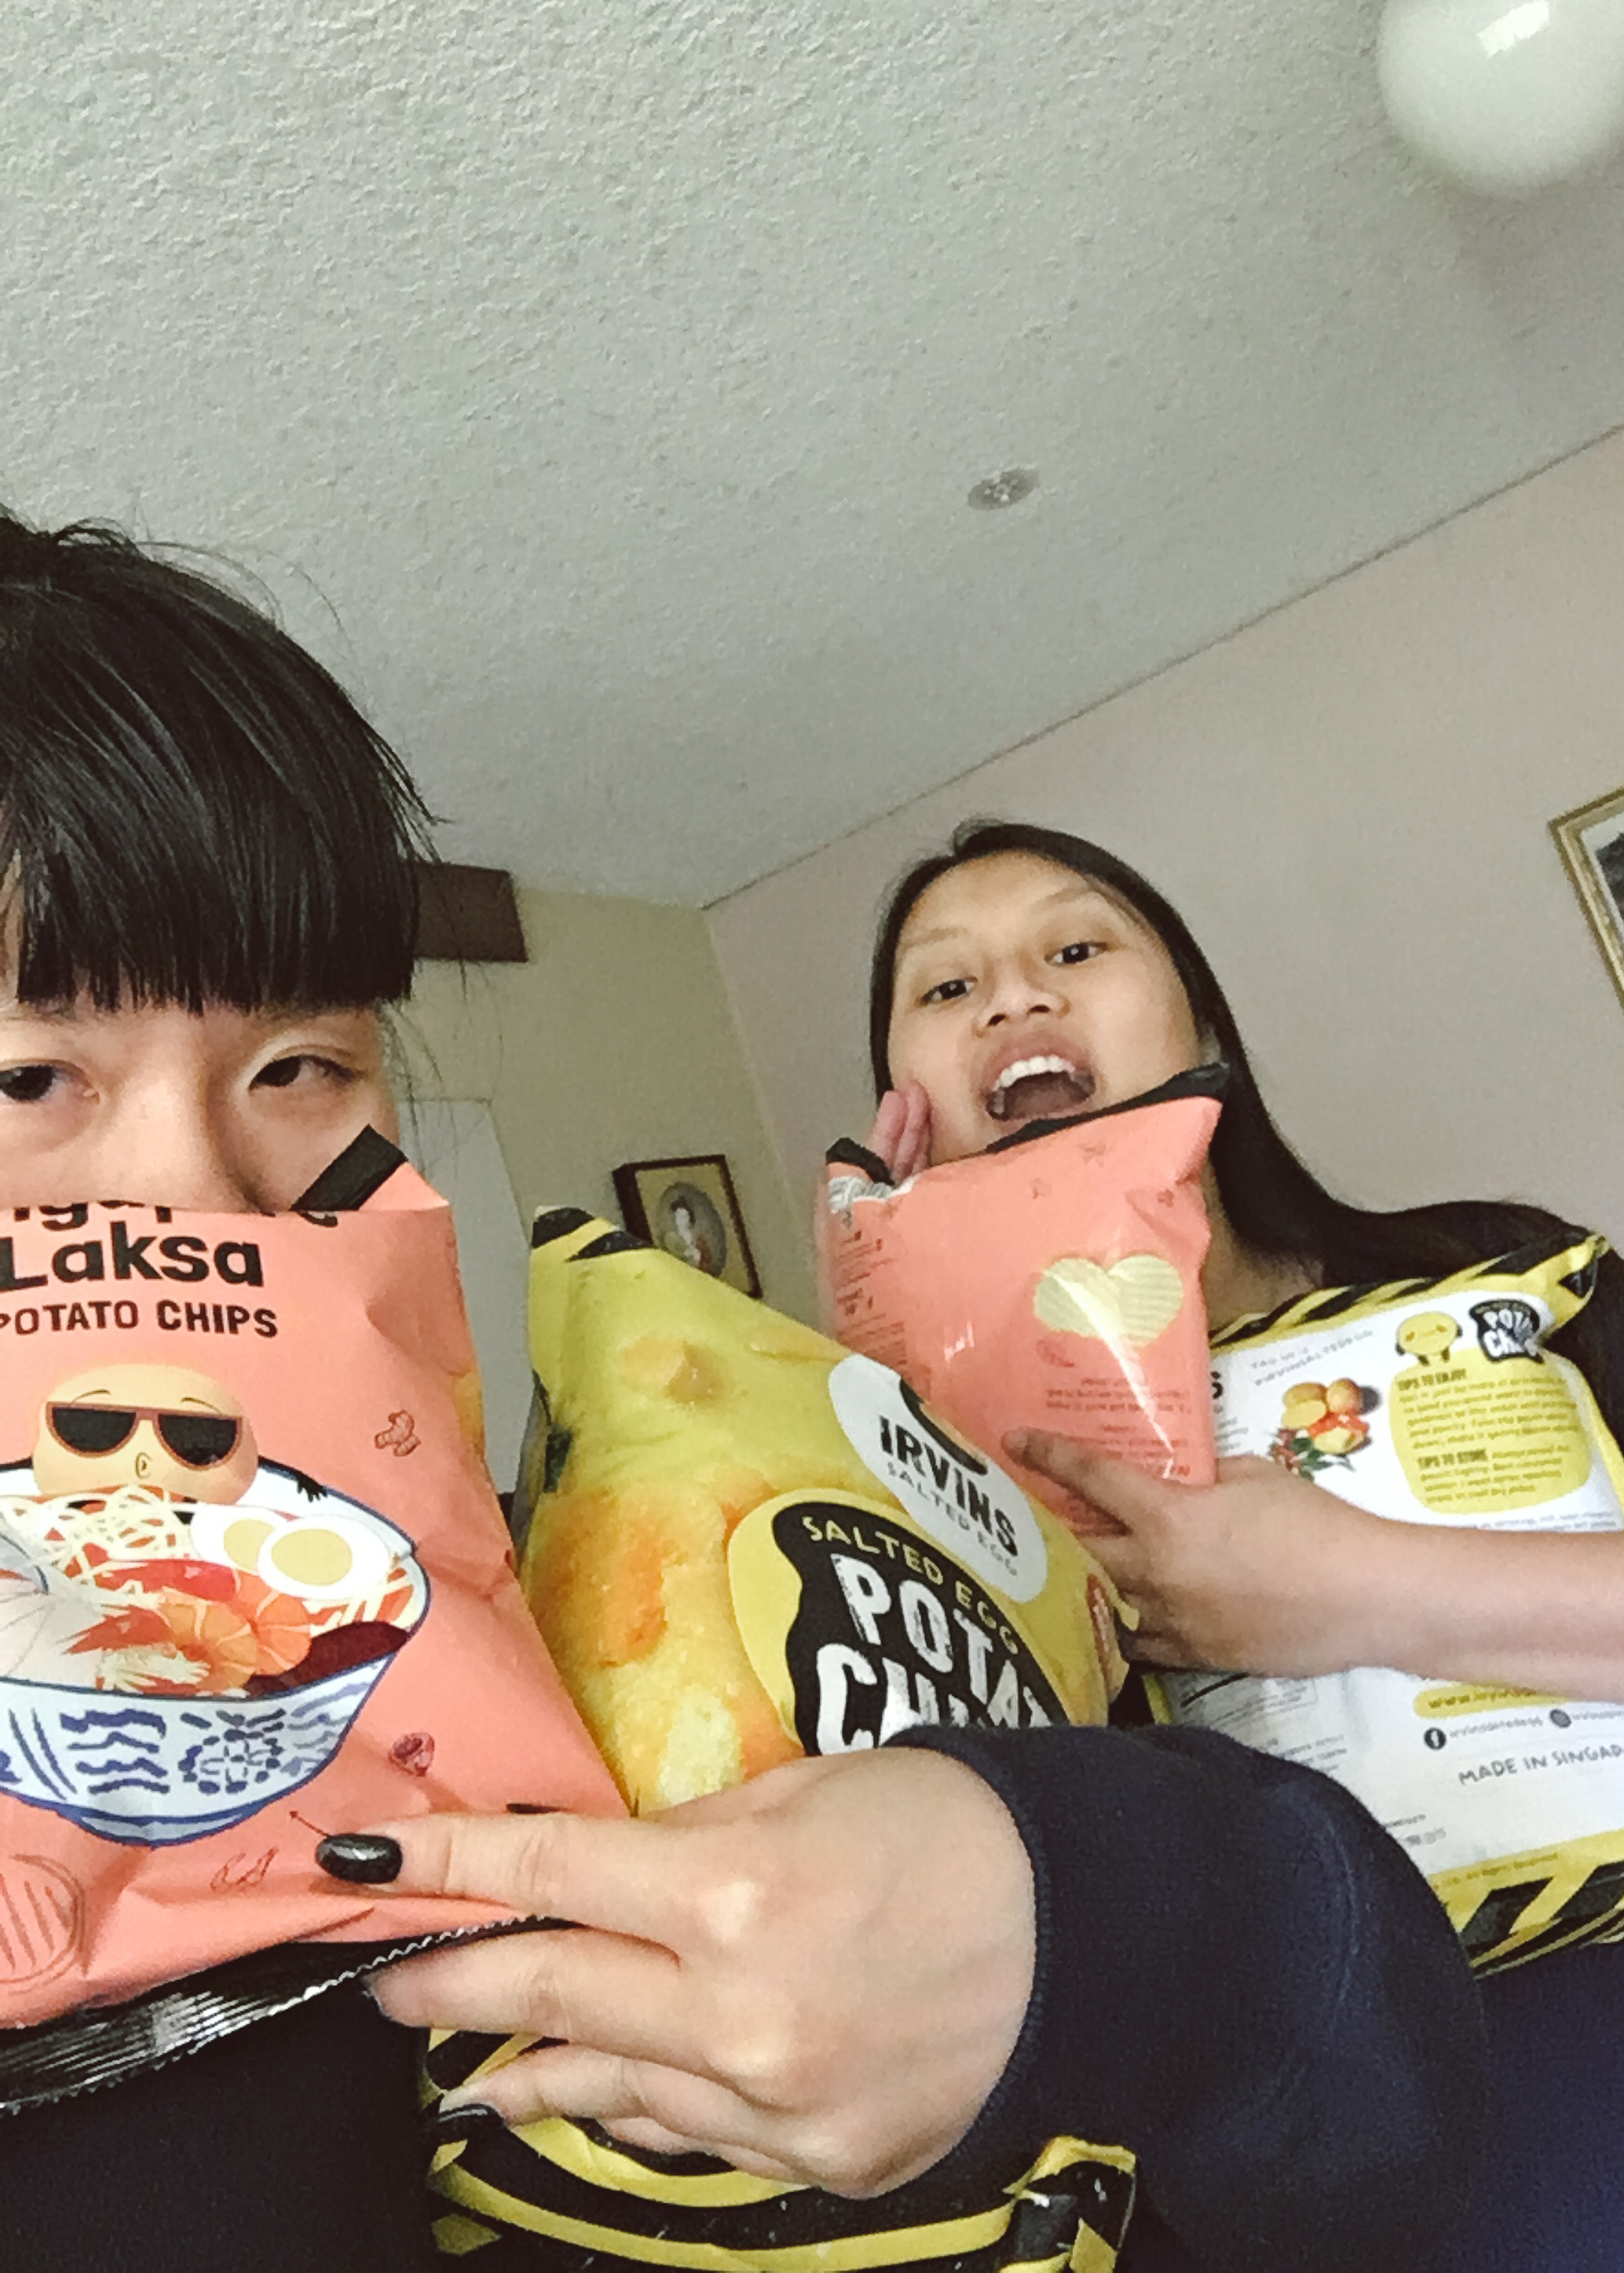 Arrived and received chips from Anna, all the way from Singapore!